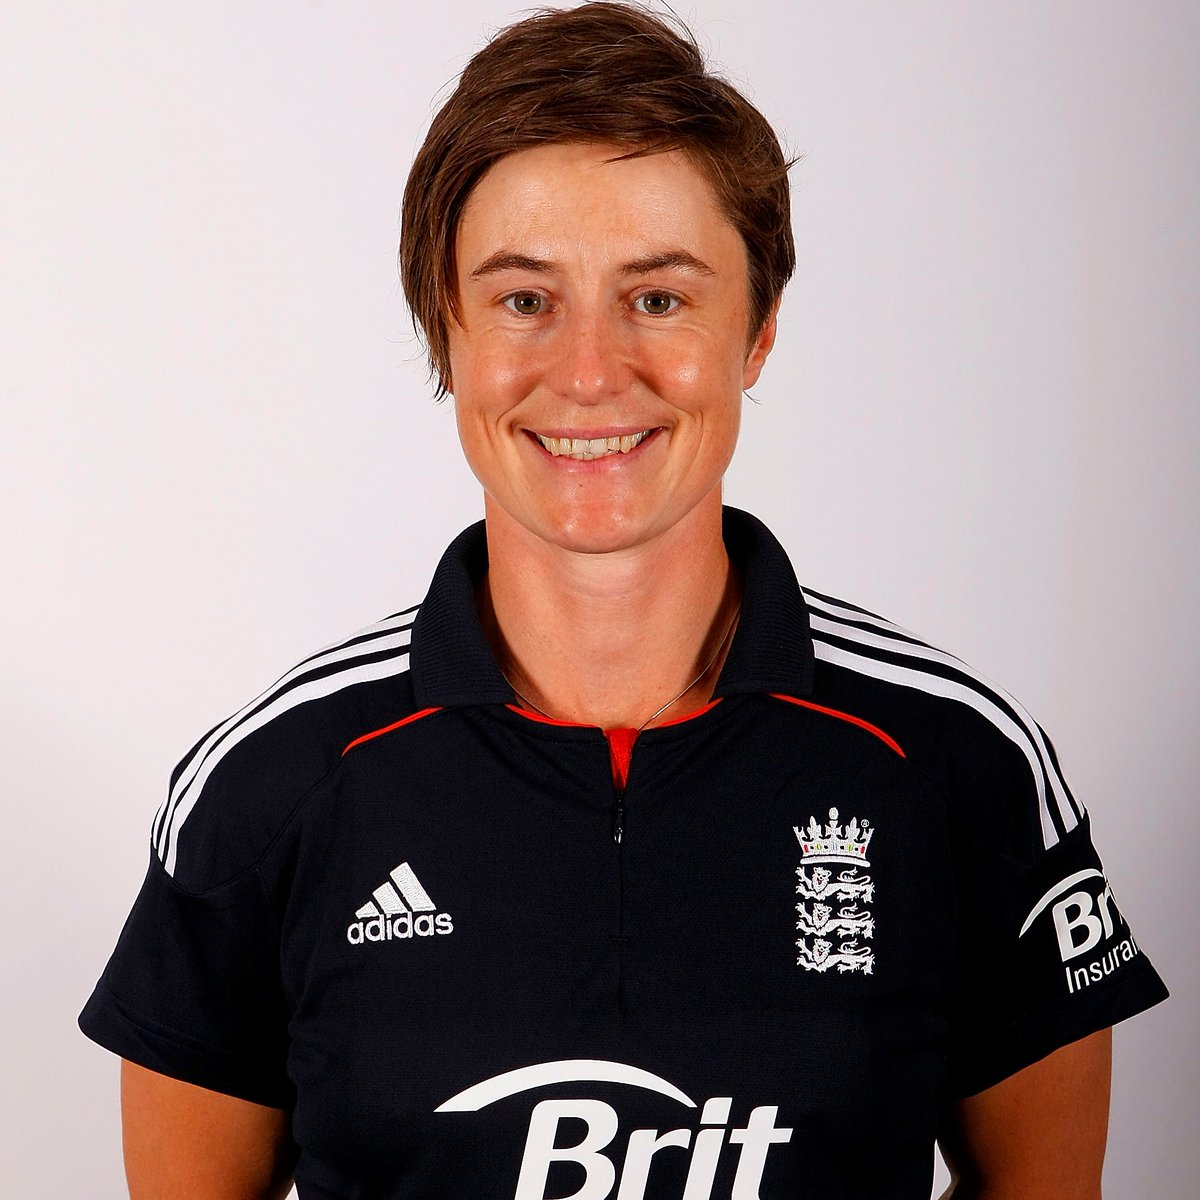 🔹 5746 international runs 🏏 🔹 12 centuries 💯 🔹 2018 ICC Hall of Fame inductee 👏  Happy birthday to legendary @englandcricket batter, Claire Taylor 🎂 https://t.co/nsa8YmOZnC